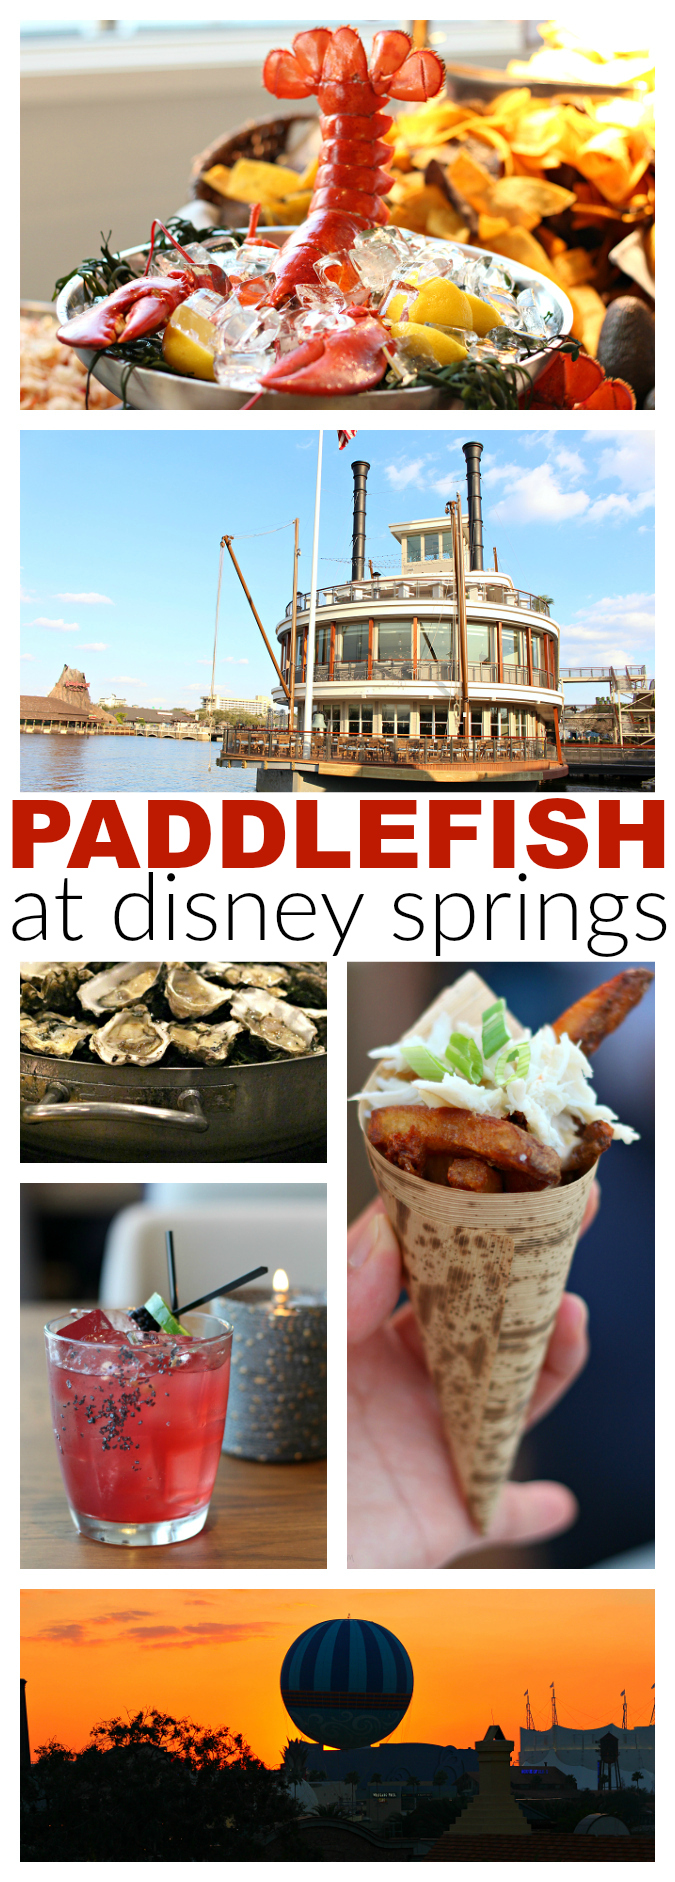 Paddlefish restaurant review at Disney springs